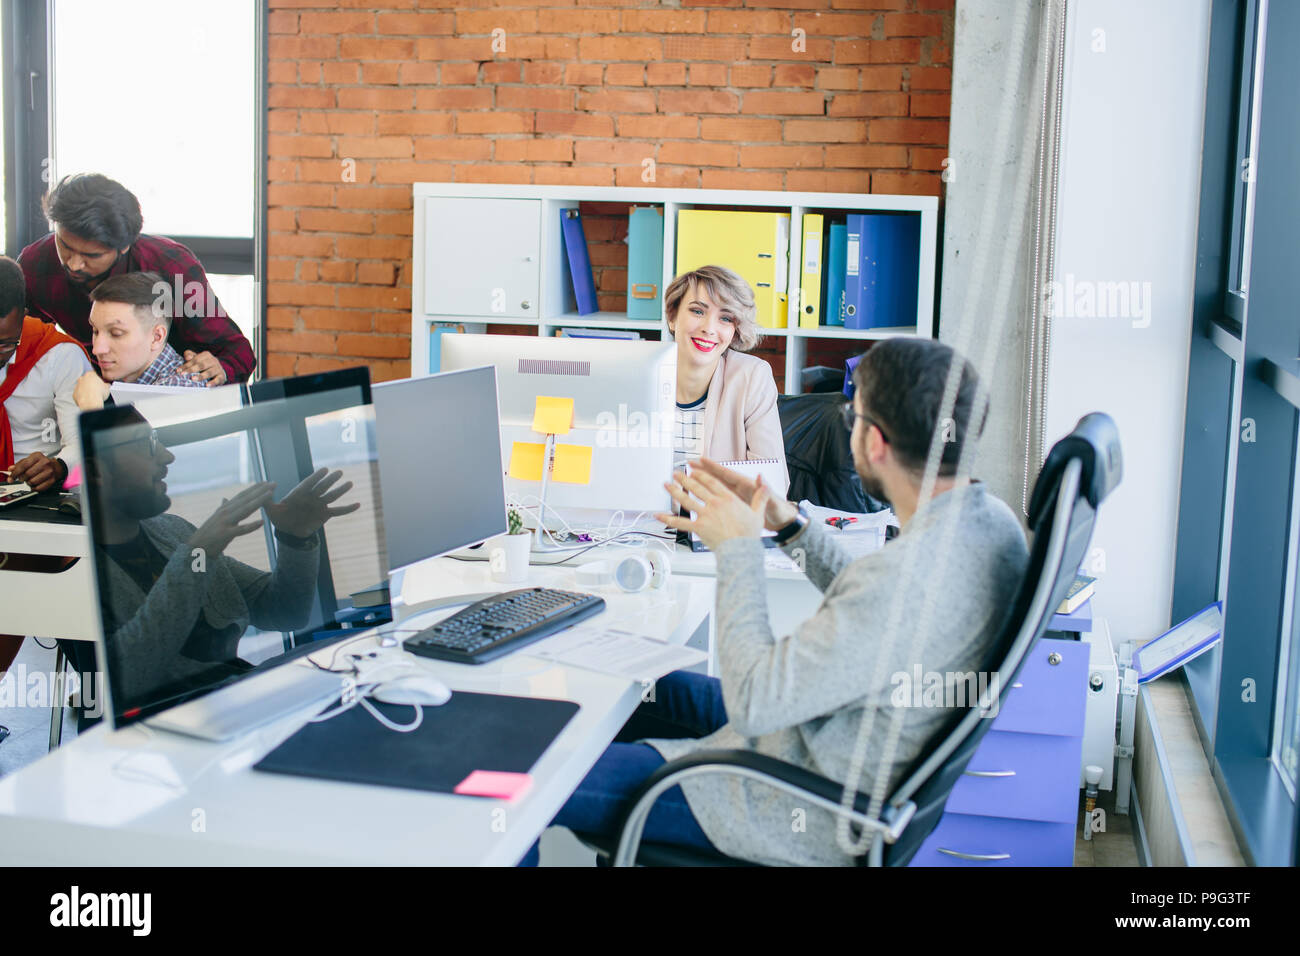 young good-looking team members discussing business ideas in loft office. - Stock Image